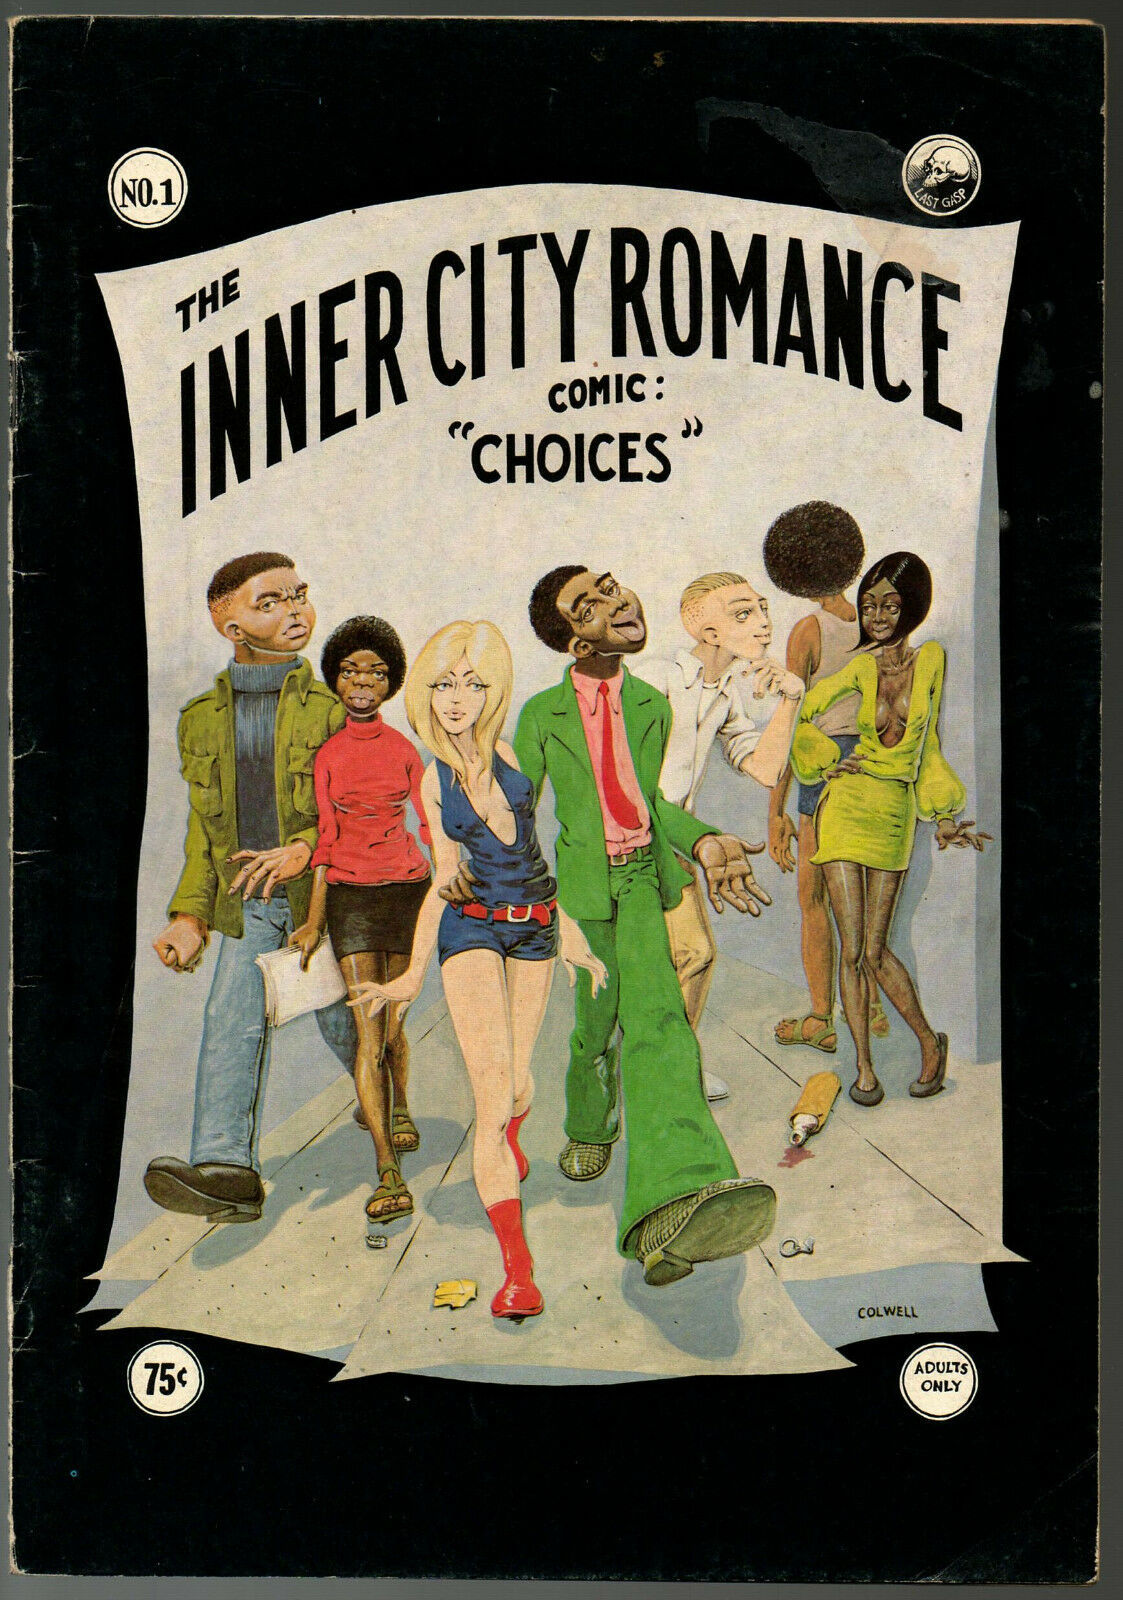 Inner City Romance 1, Guy Colwell, Last Gasp 1972, underground comix, 4th print